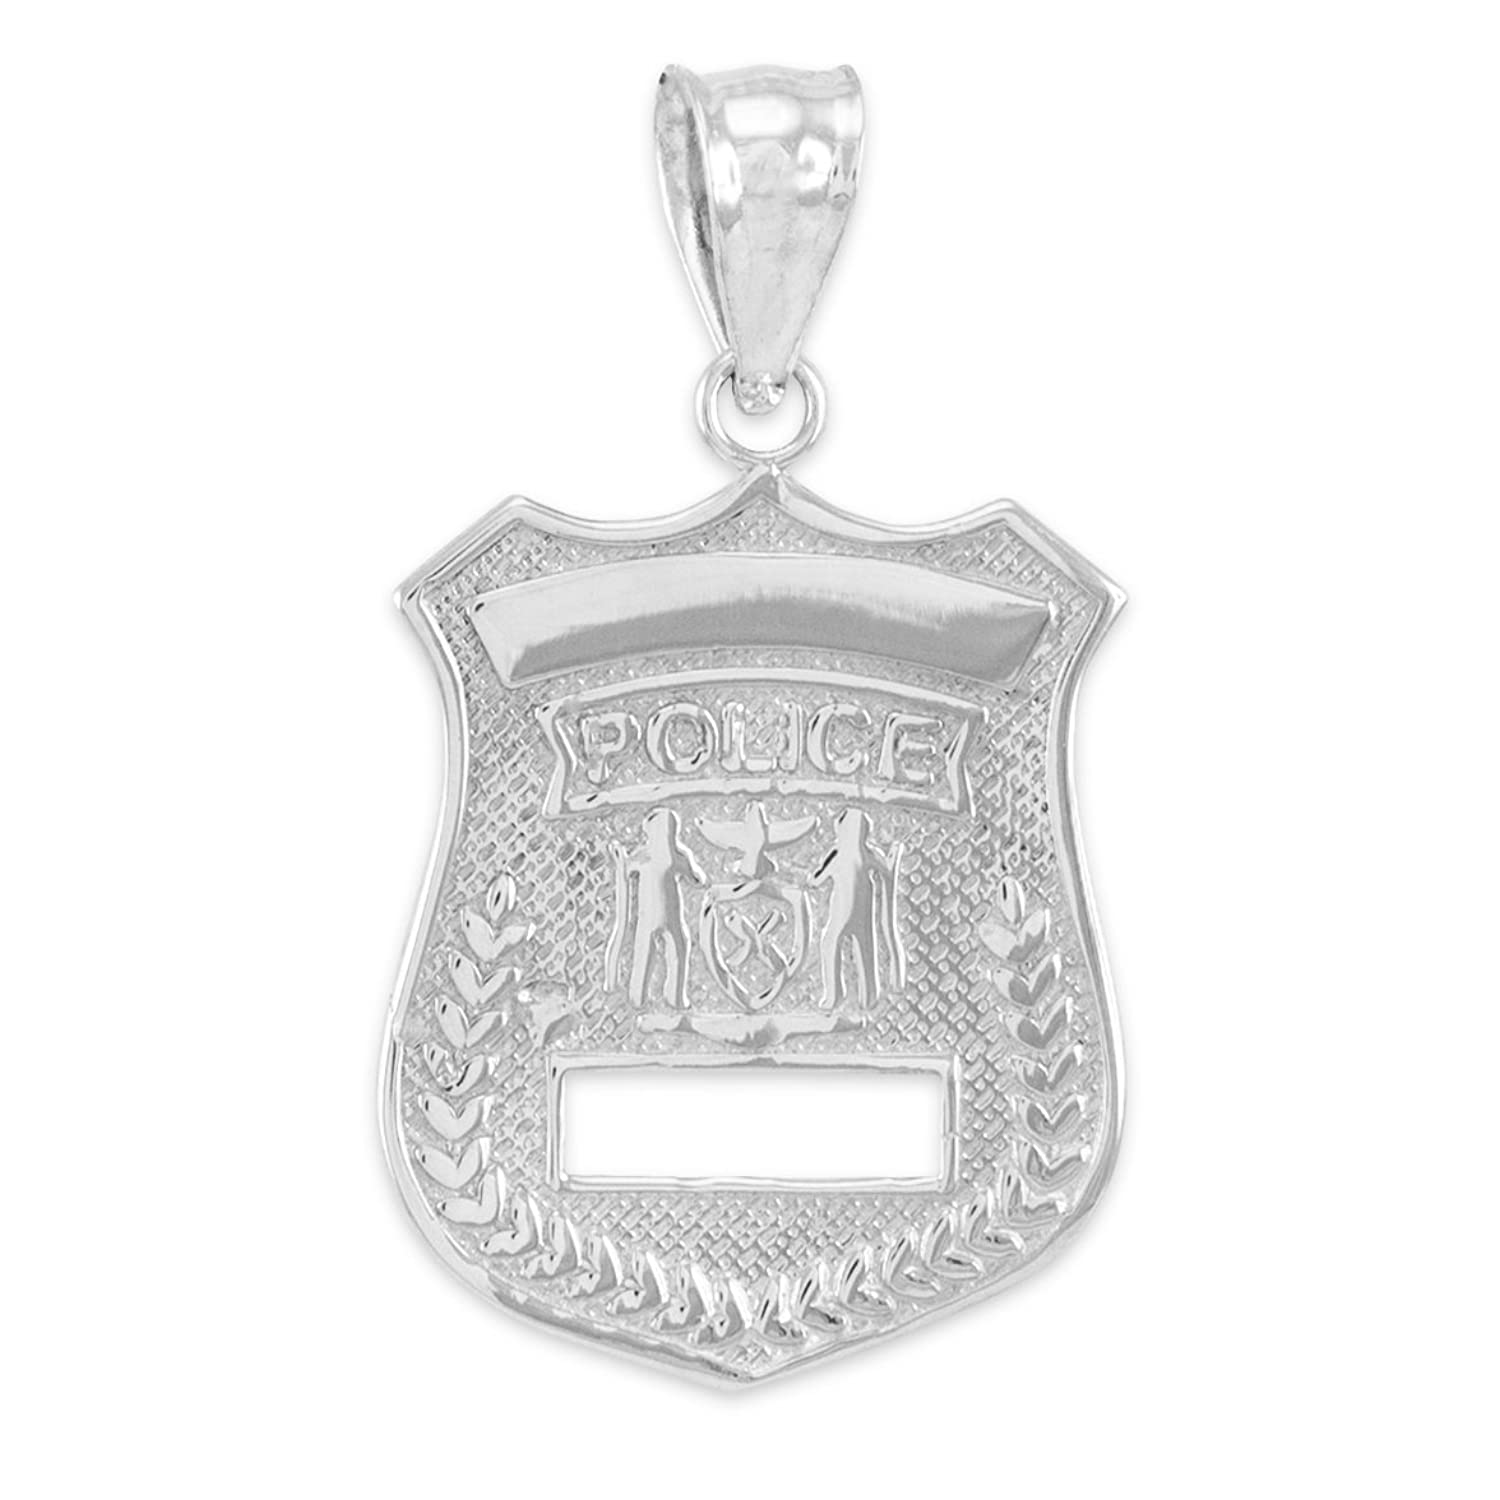 fancy badge silver advice a or model picture of accessorie dress revolutionary police pendant for unknown party